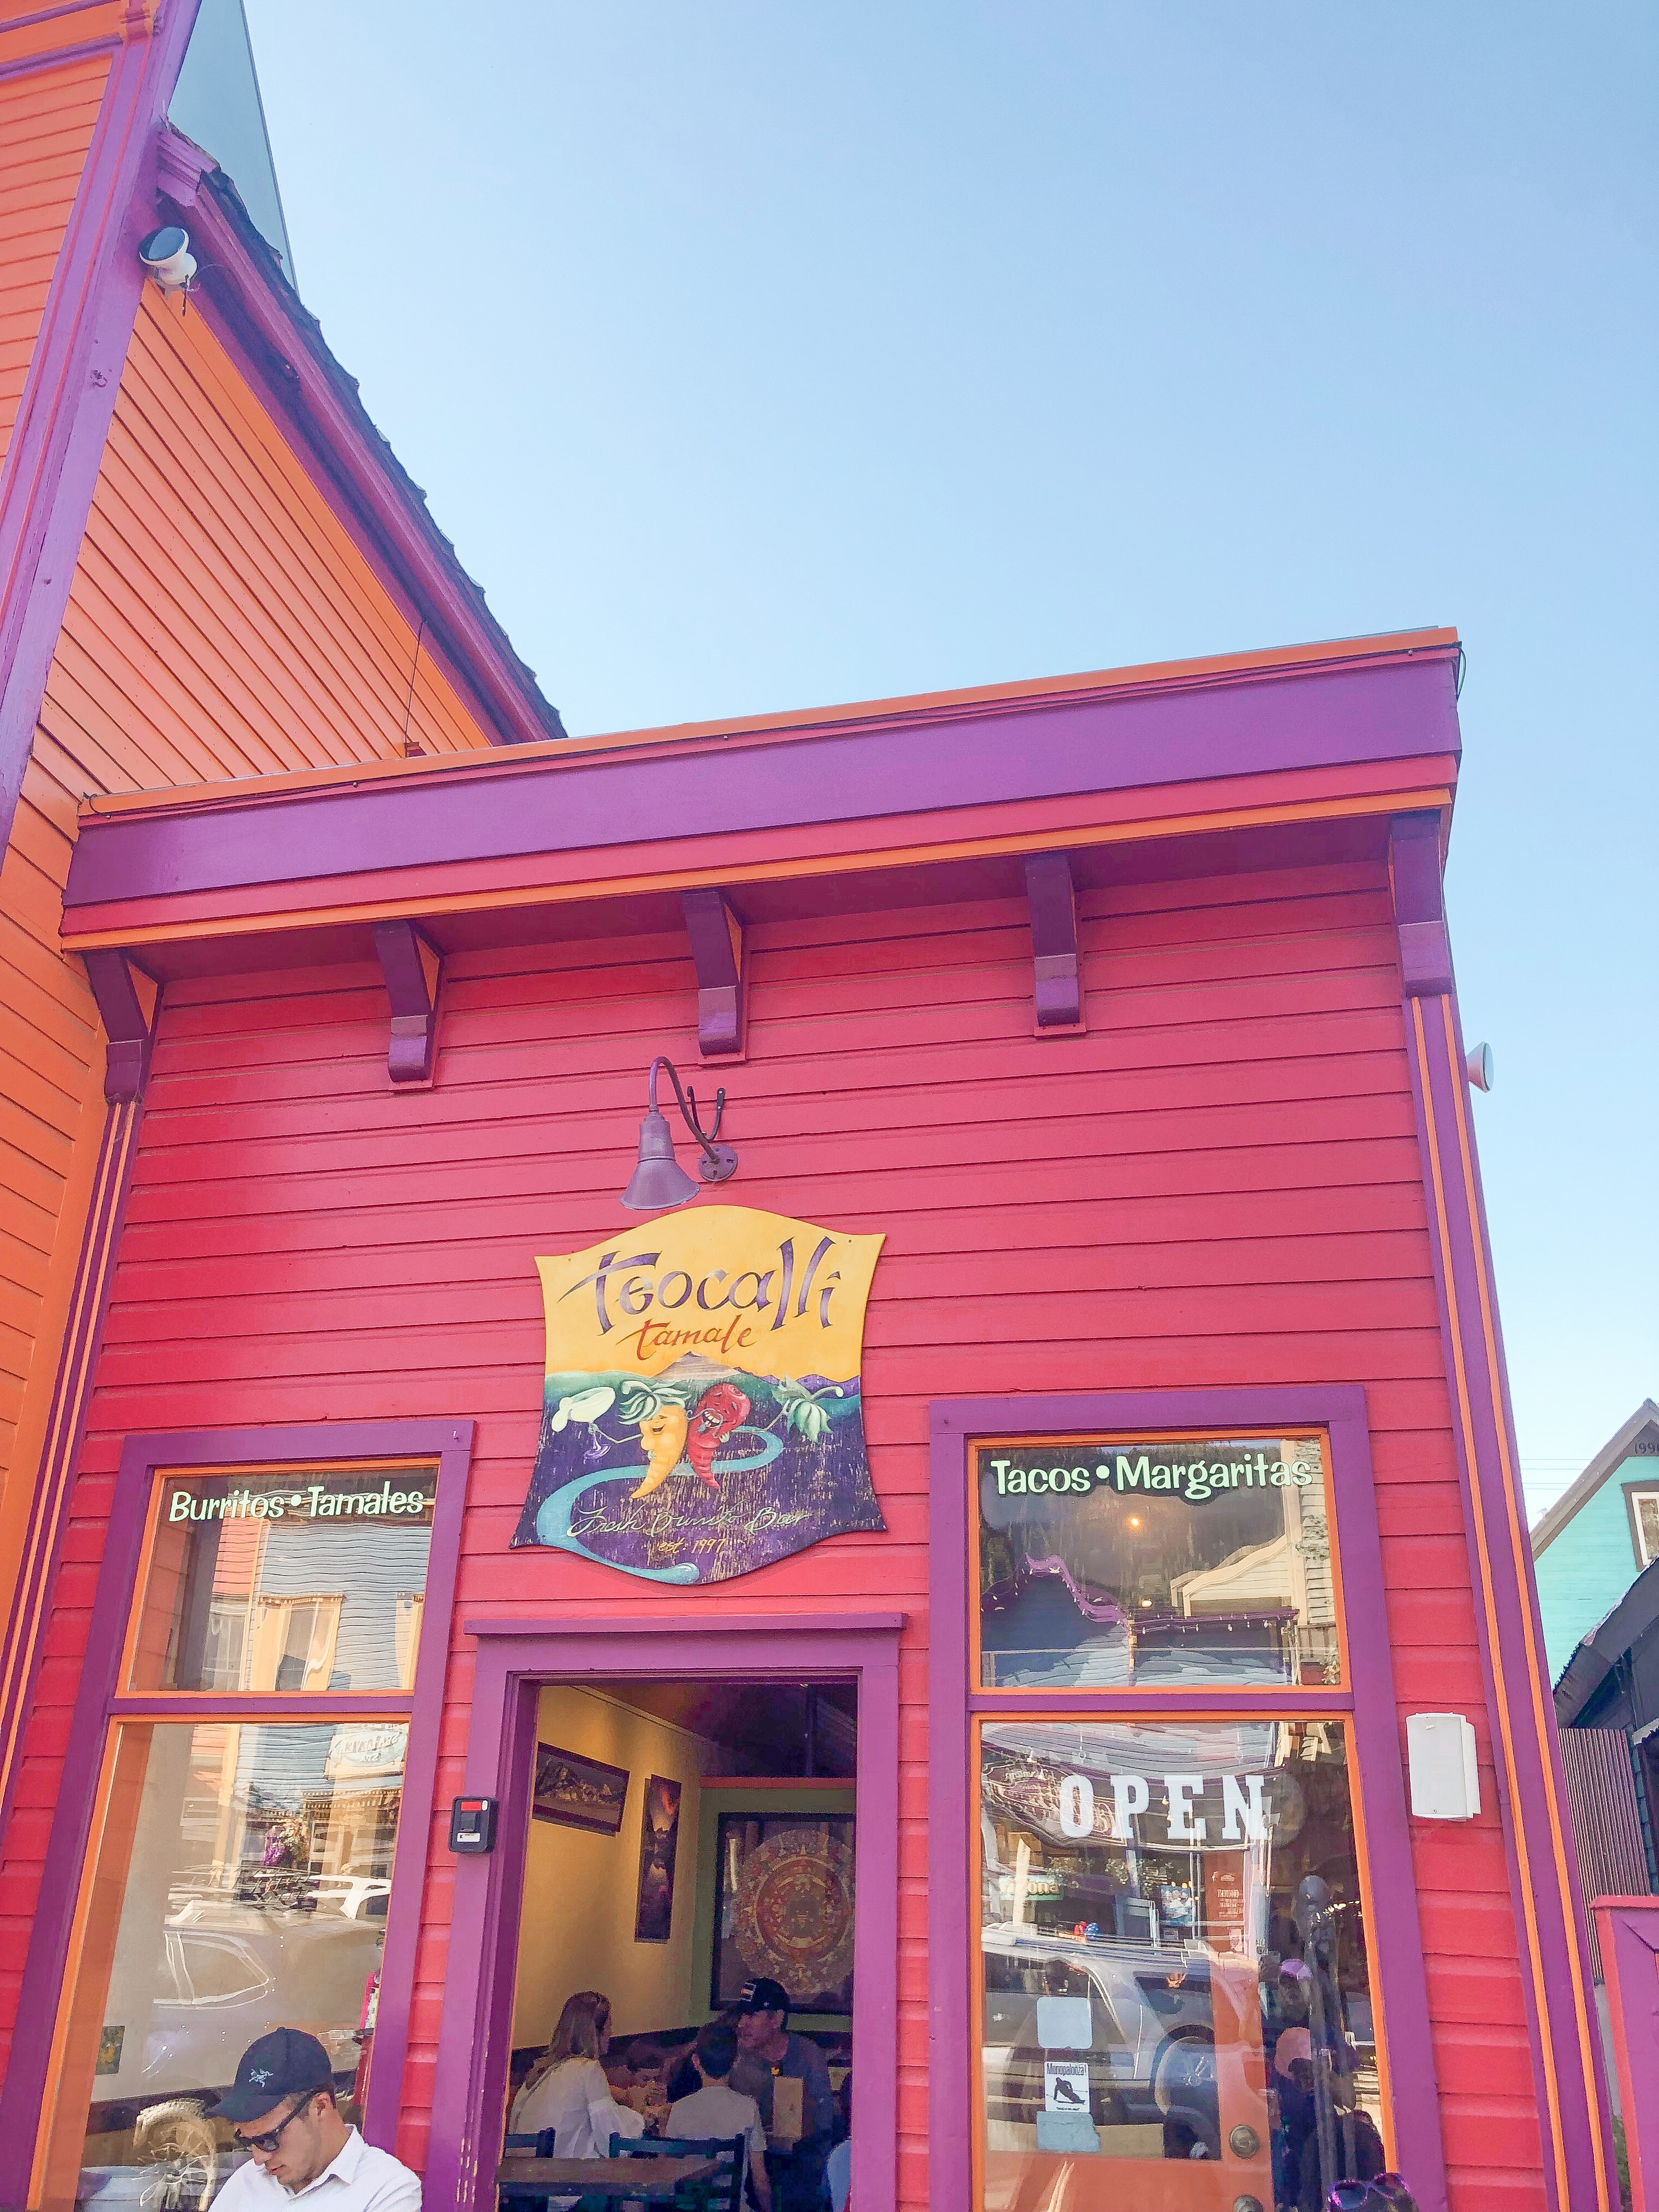 Teocalli Tamale, a Mexican restaurant in downtown Crested Butte.